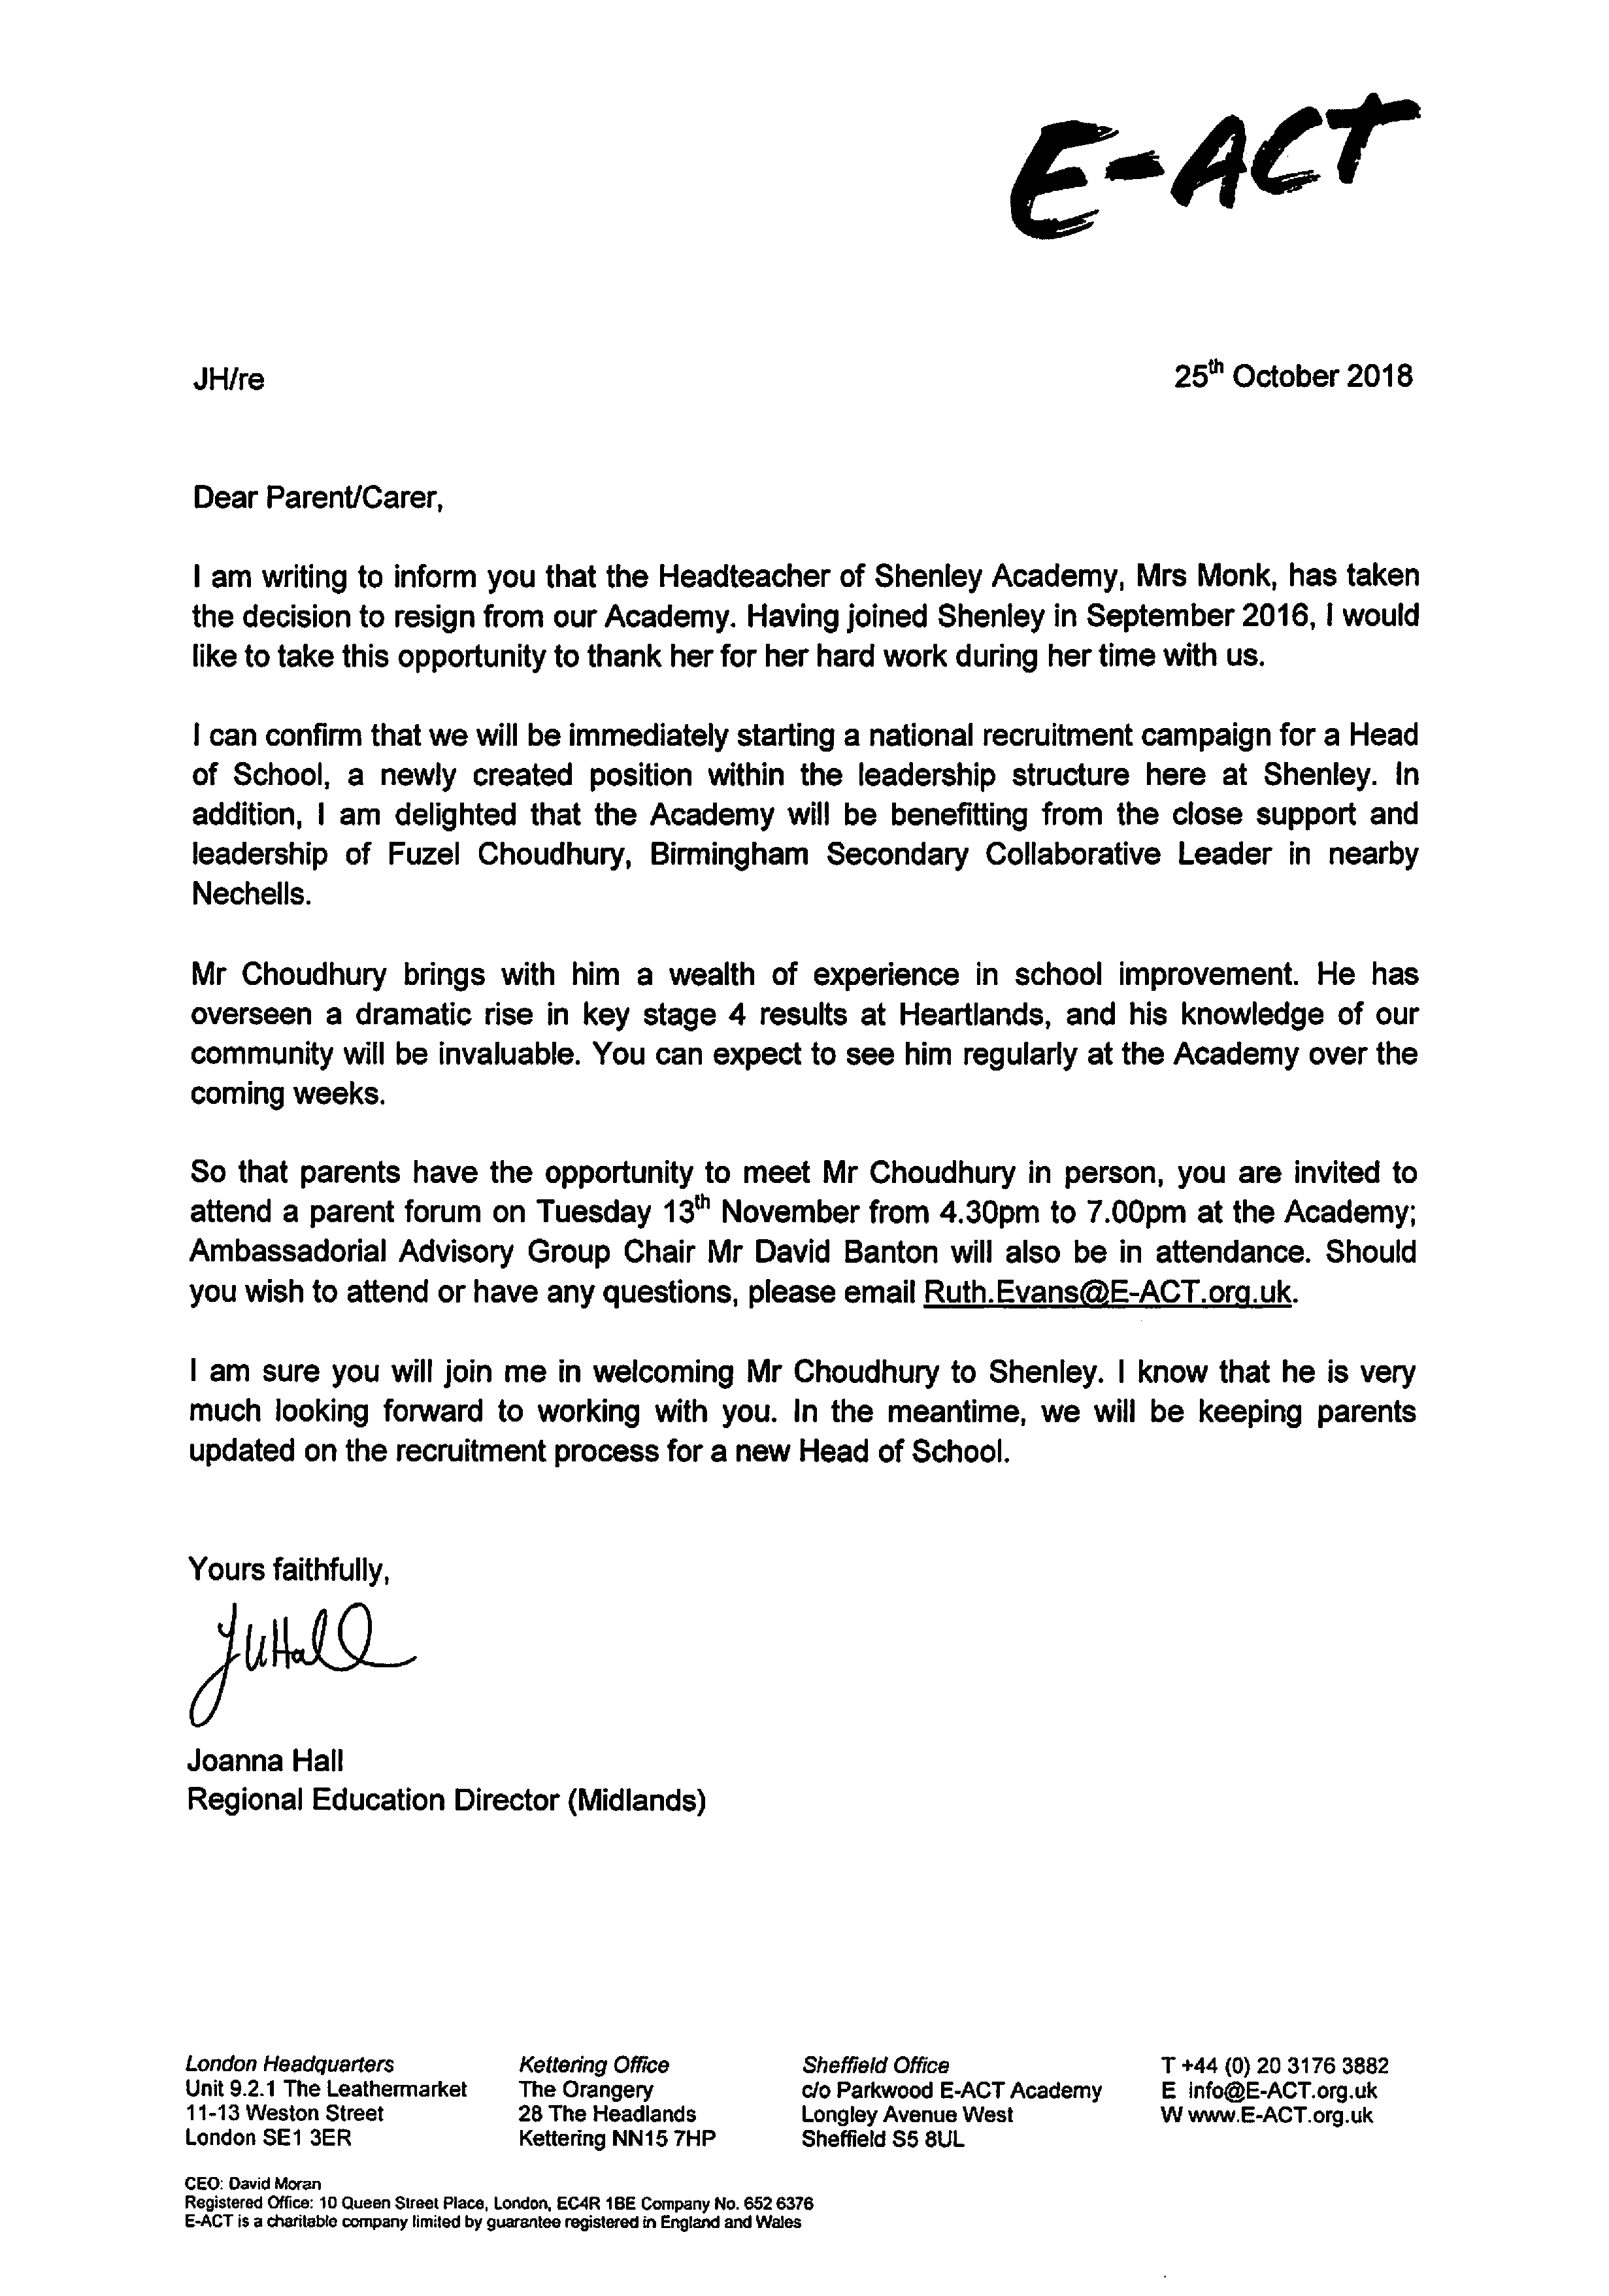 e-act letter